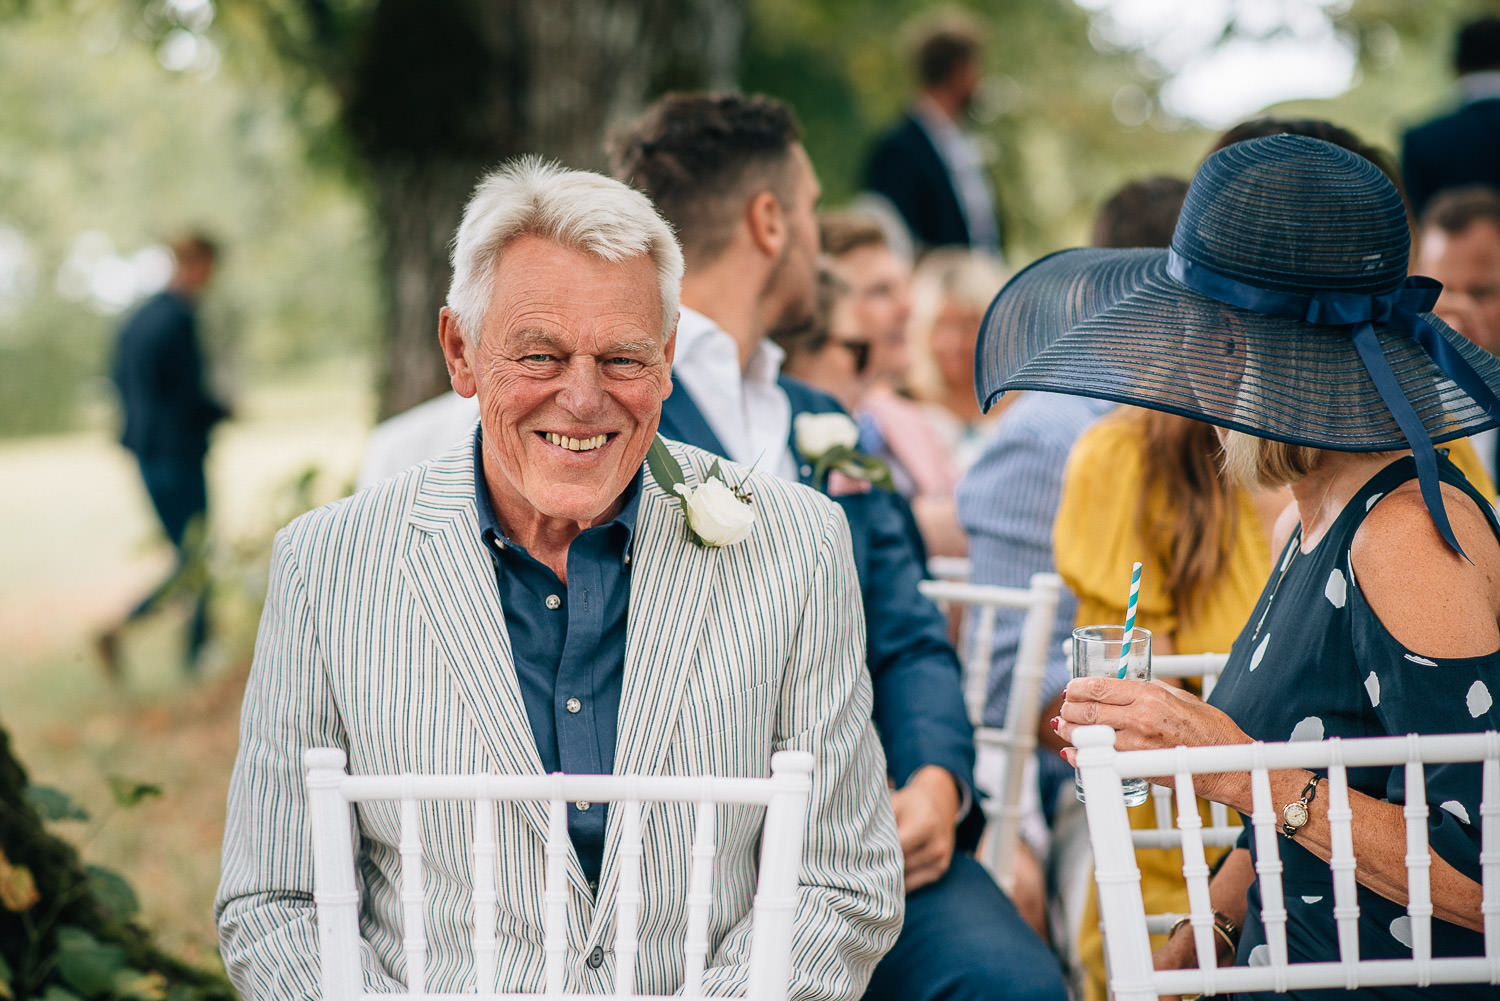 Grandad smiling in chateau de la bourlie wedding by destination wedding photographer the shannons photography